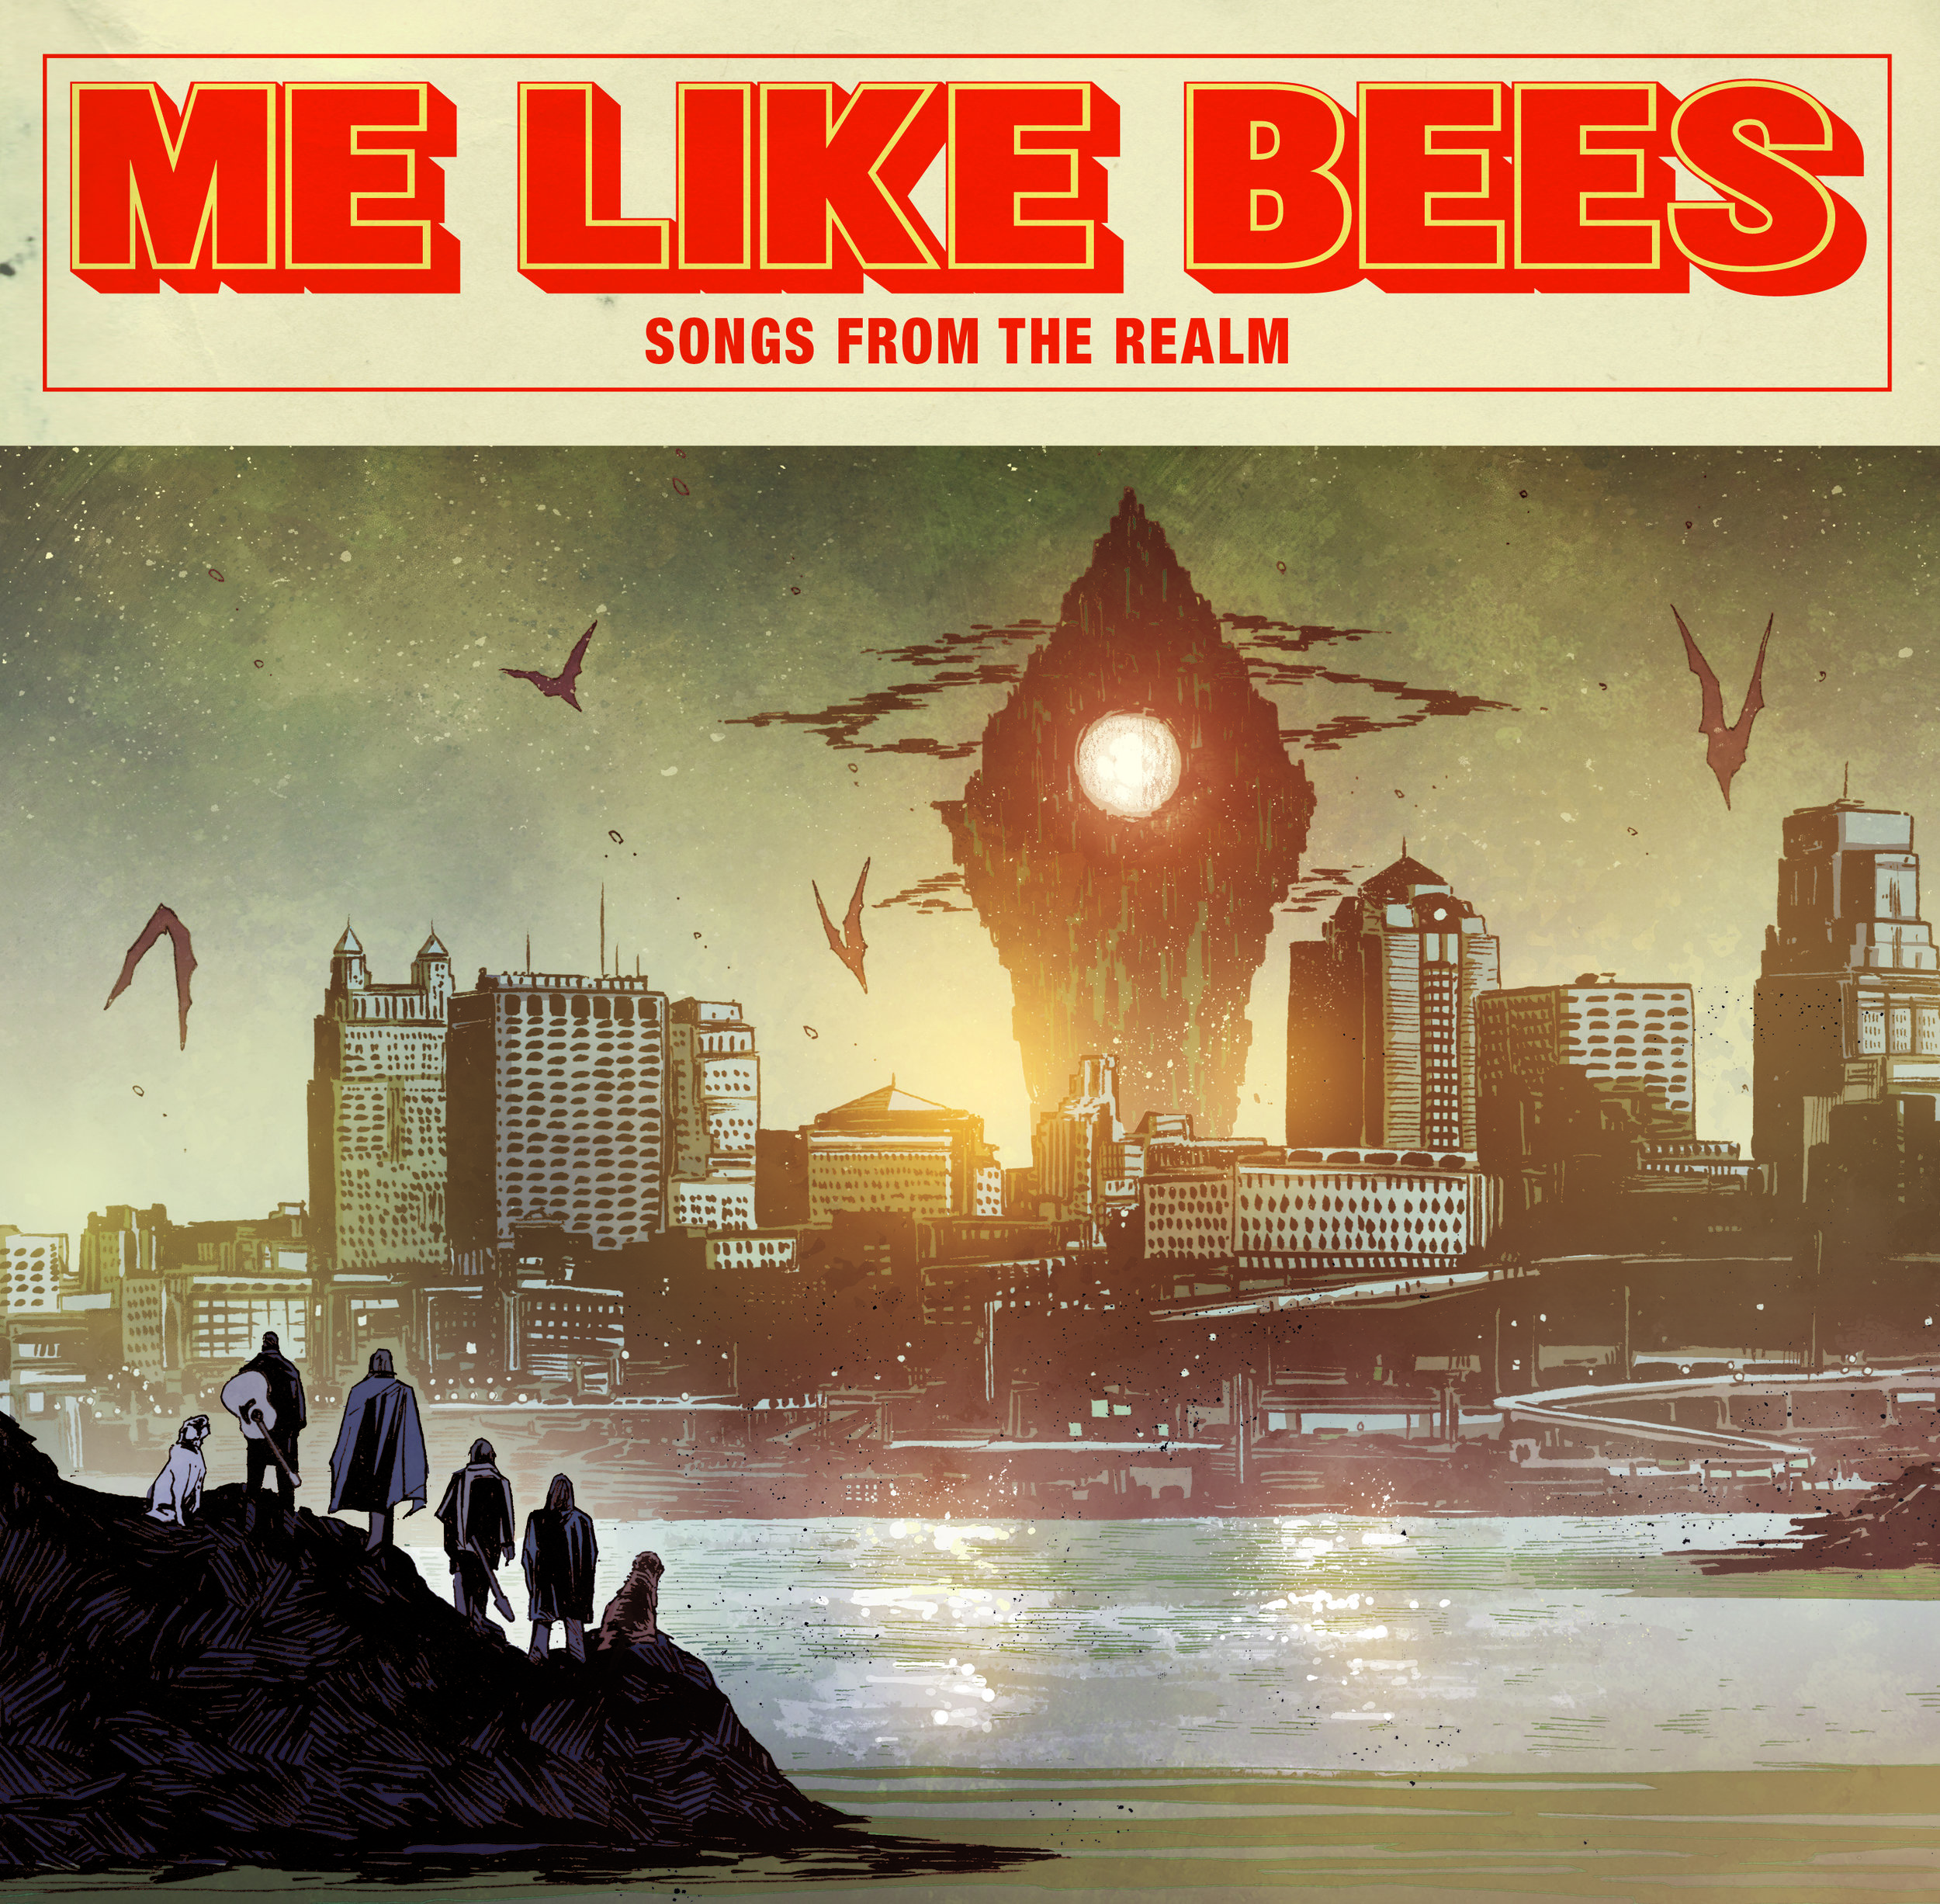 me-like-bees-CD-COV-01.jpg